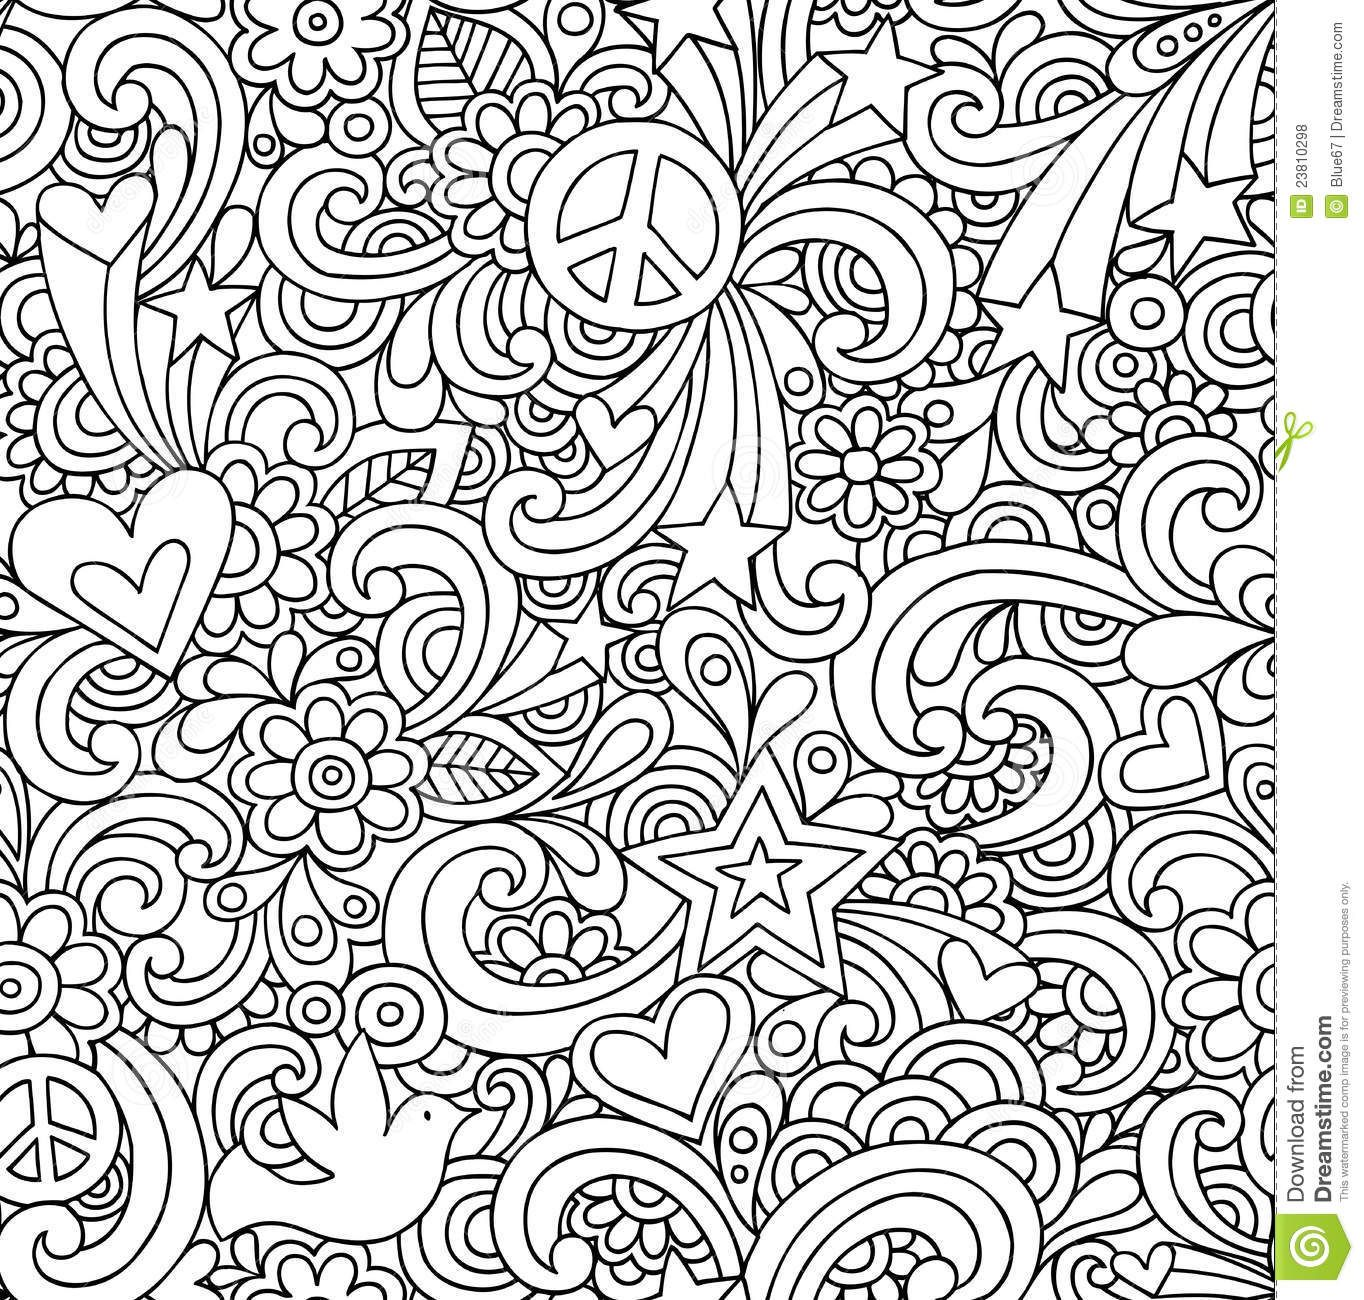 """Icolor """"love"""" Psychedelic Peace 